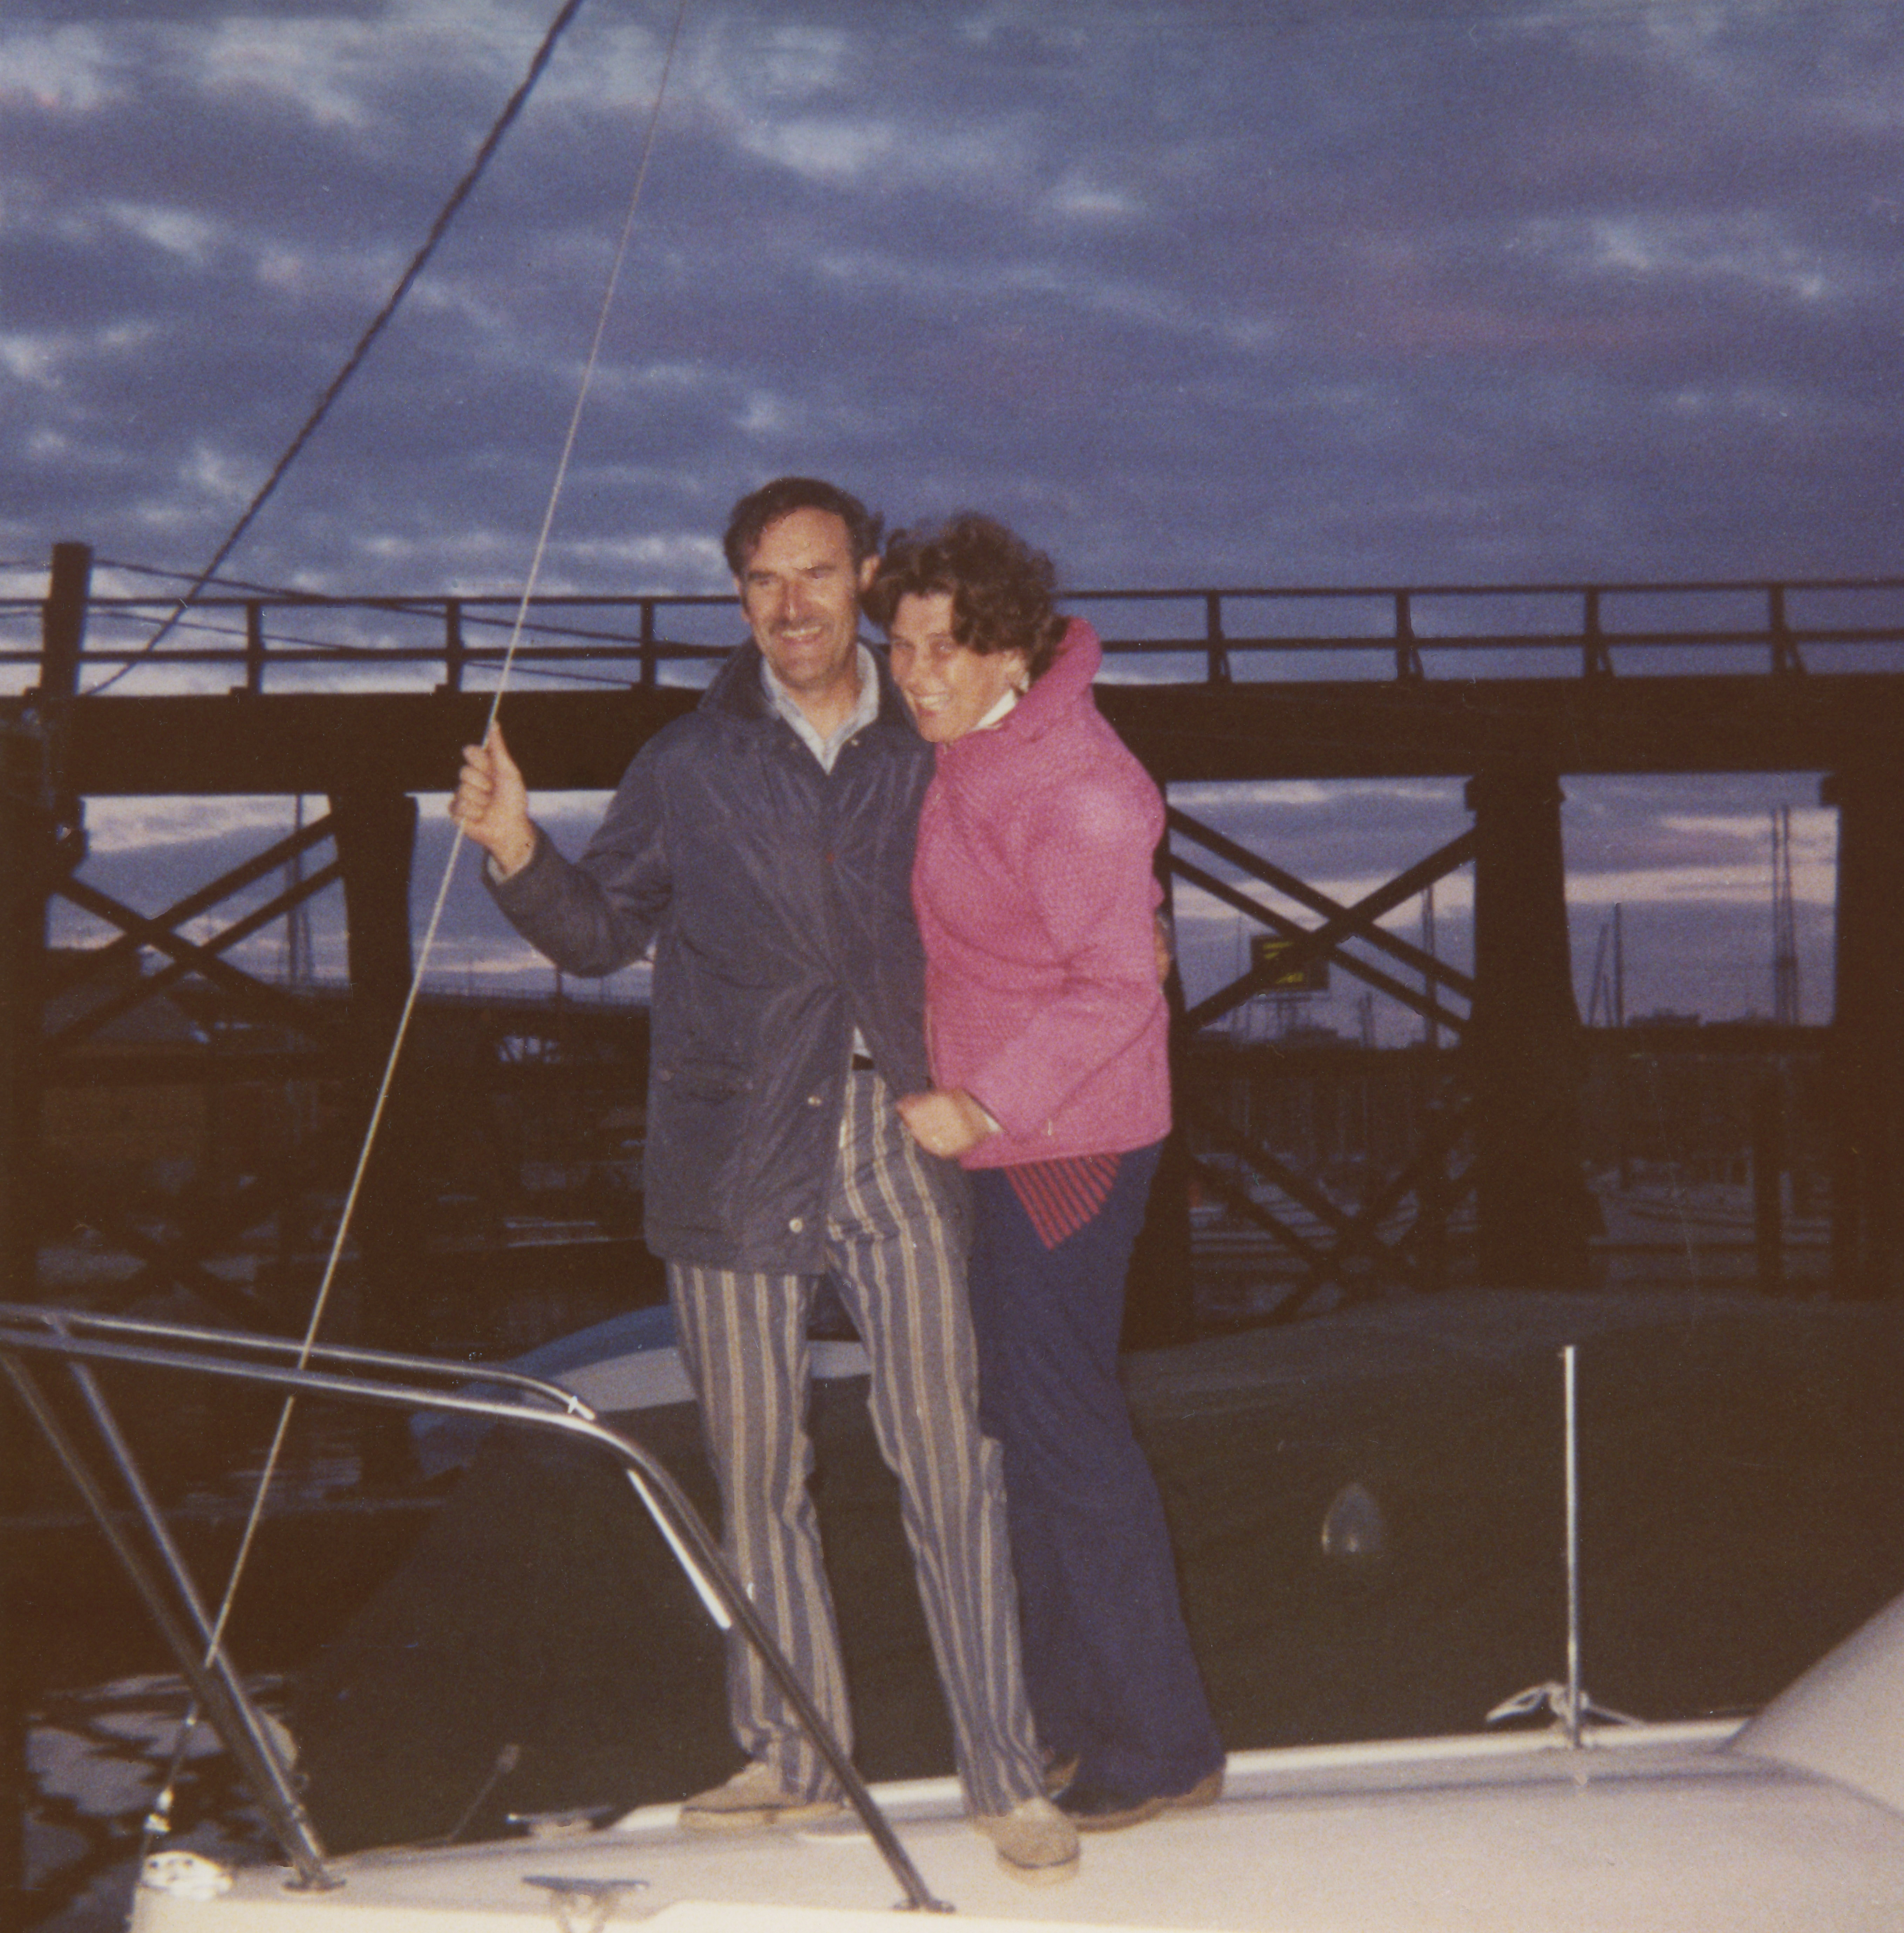 Photograph of Sheila and John laughing and posing together of their boat